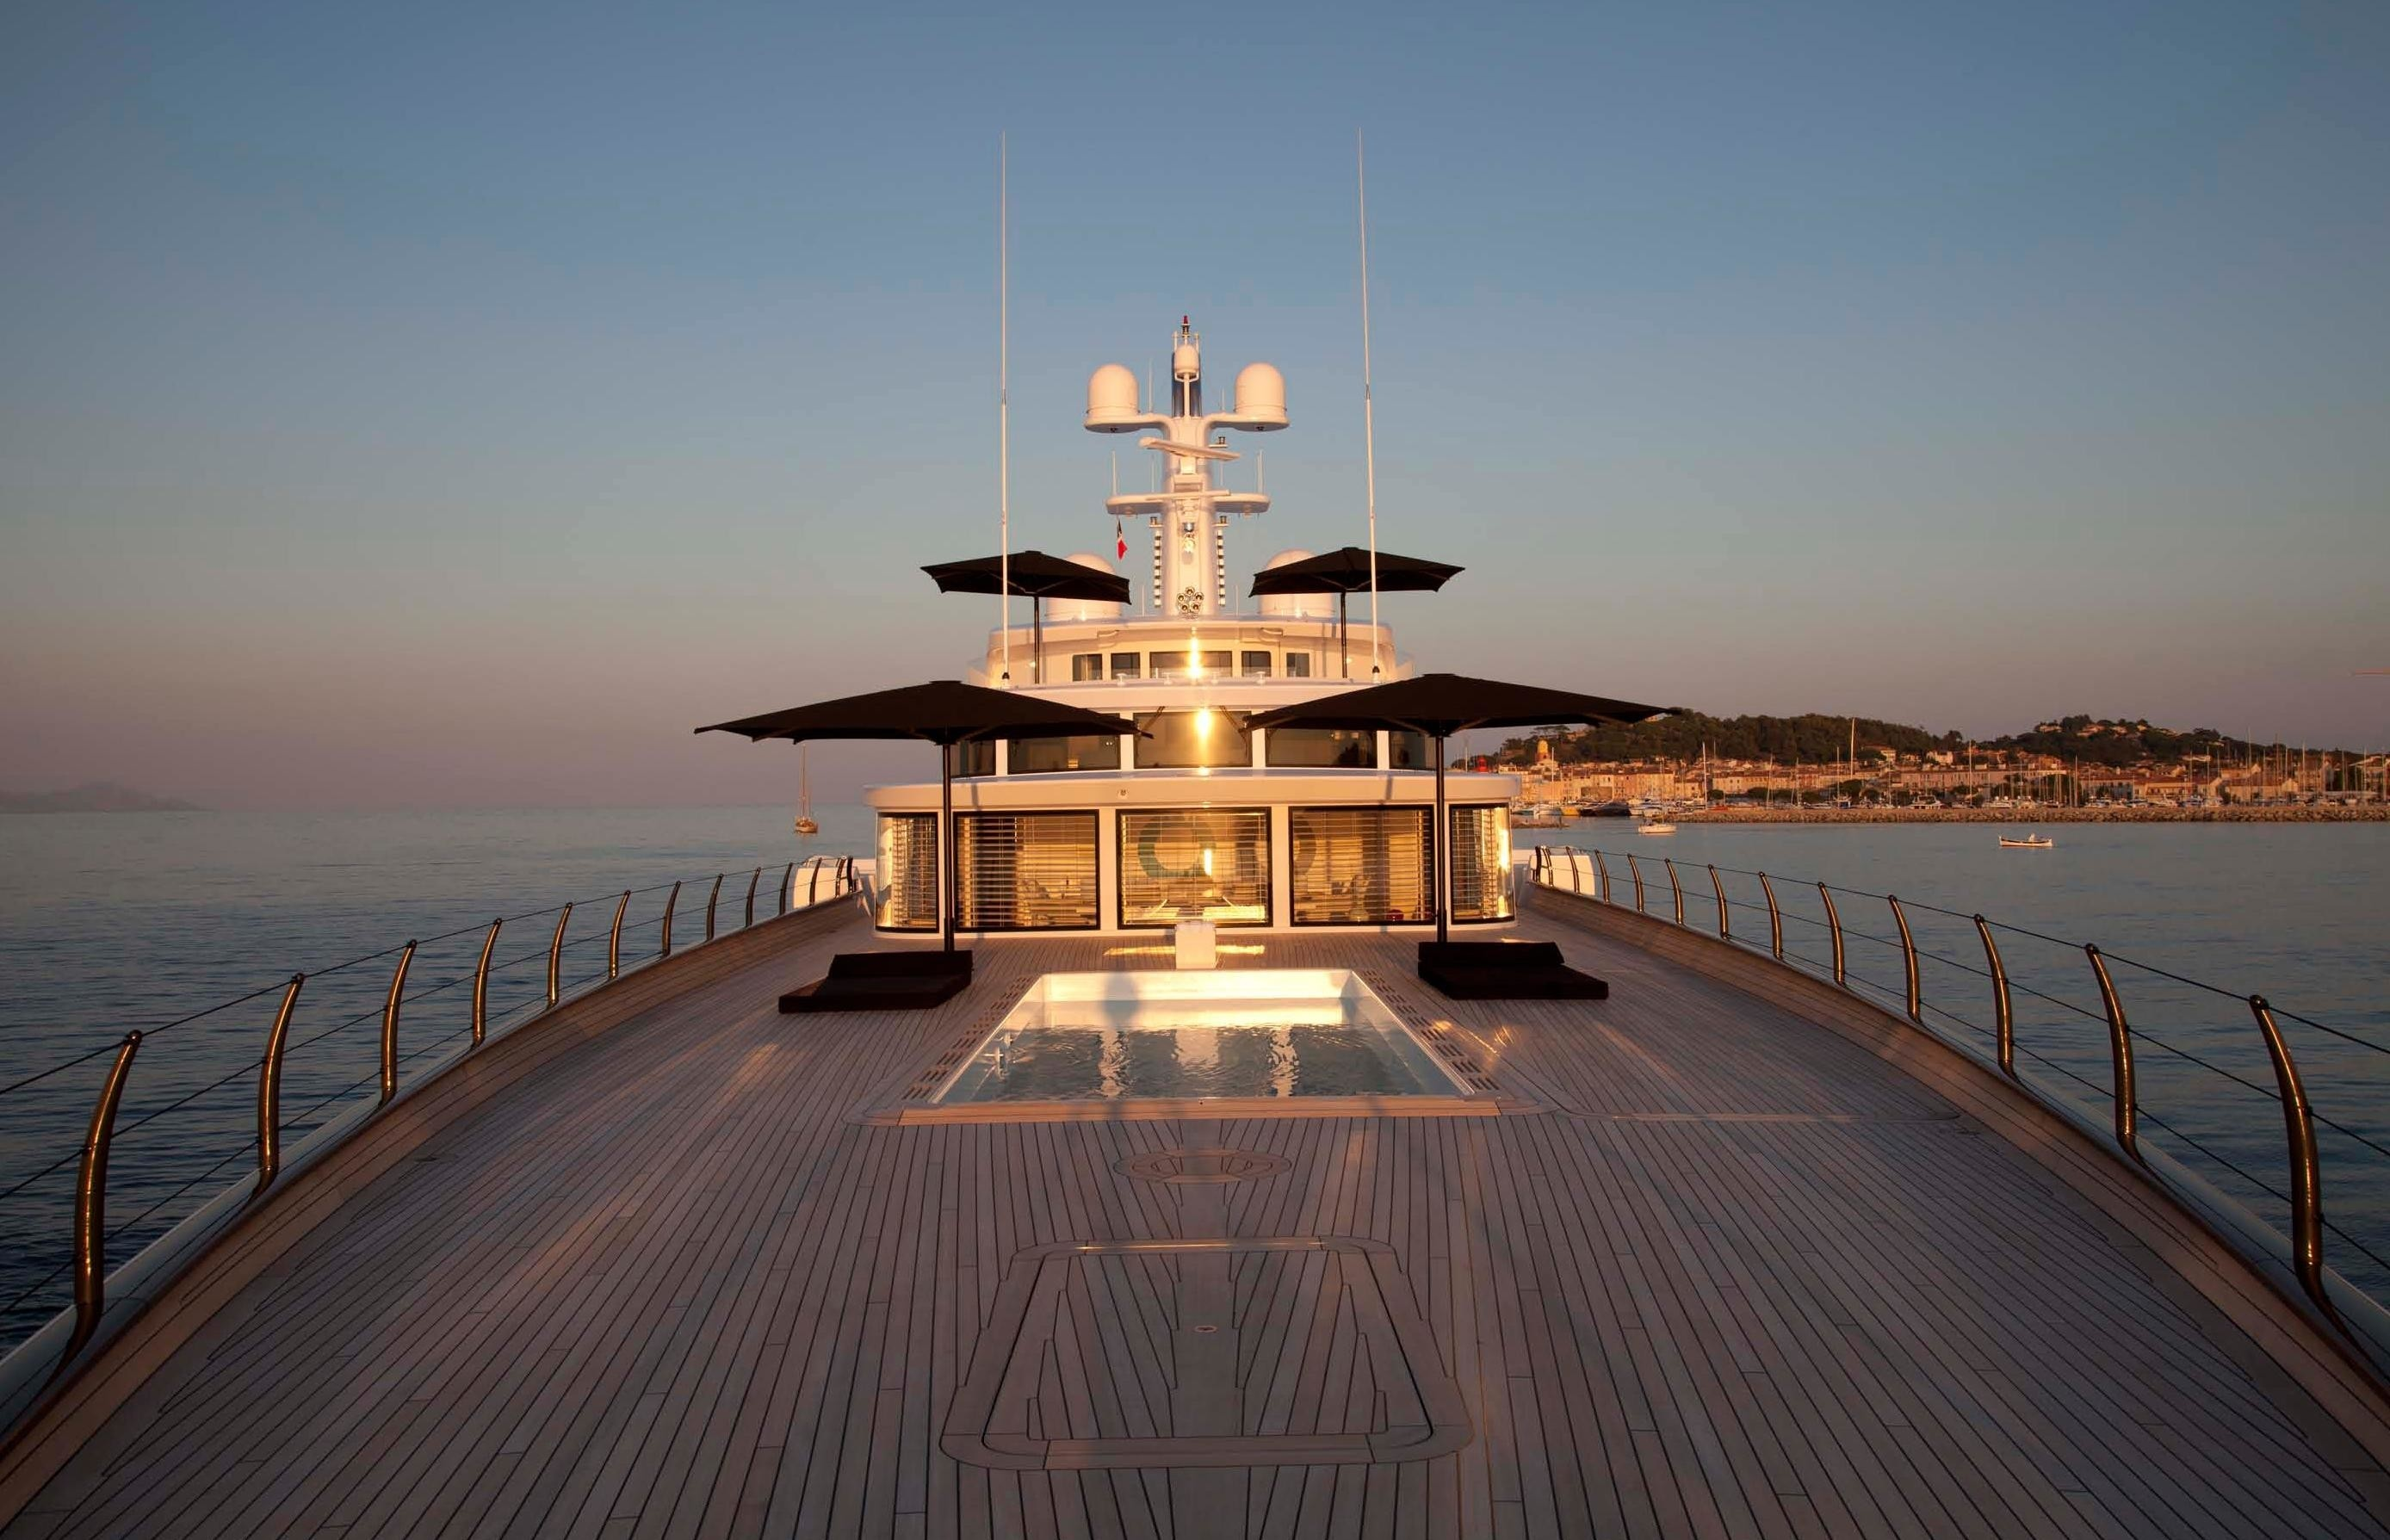 Fore Deck Aboard Yacht AIR in the Mediterranean